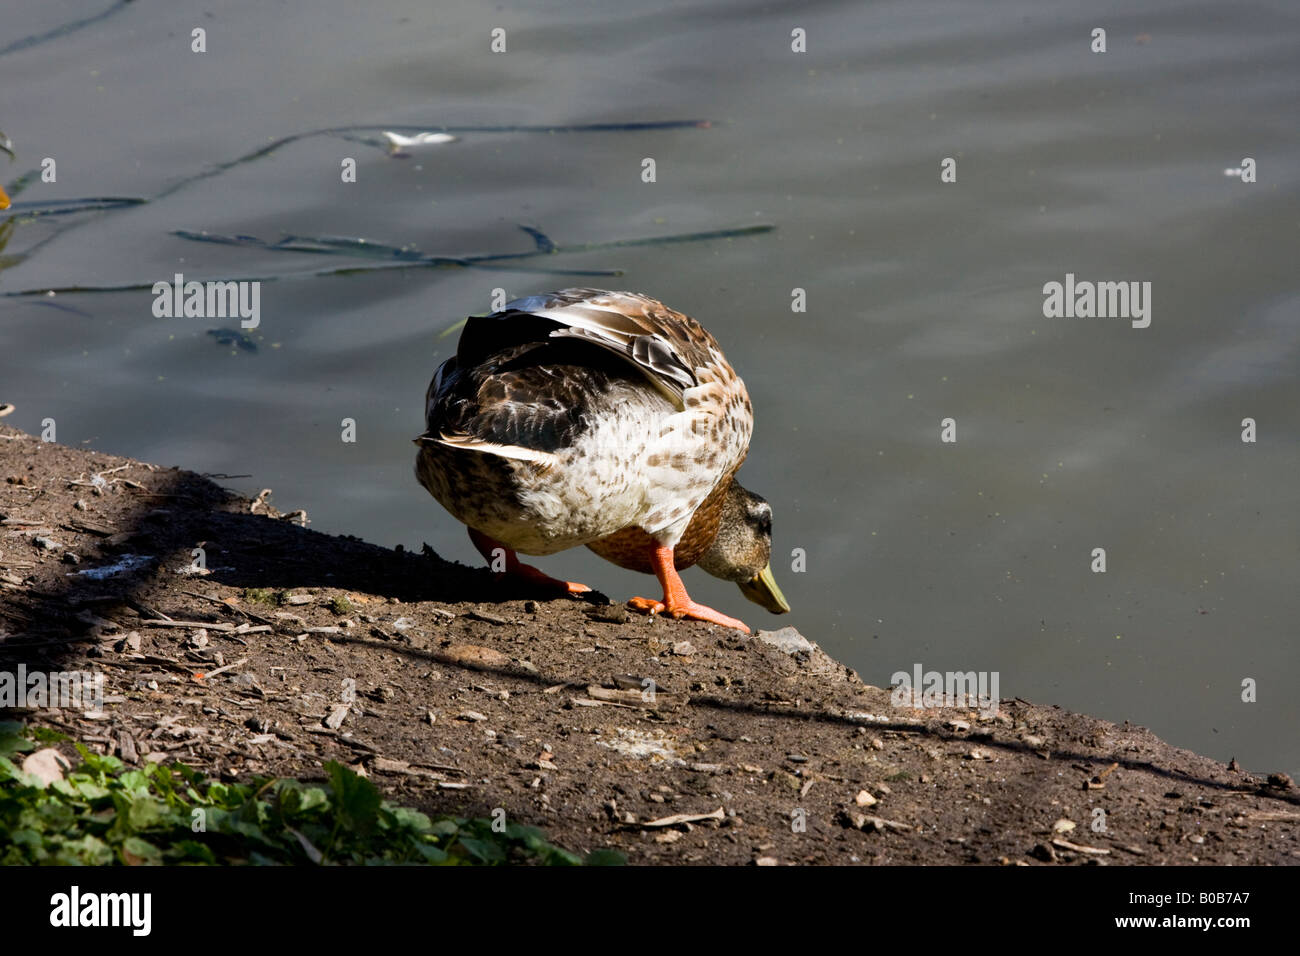 A duck about to take the plunge into a pond at Homebush, NSW, Australia - Stock Image